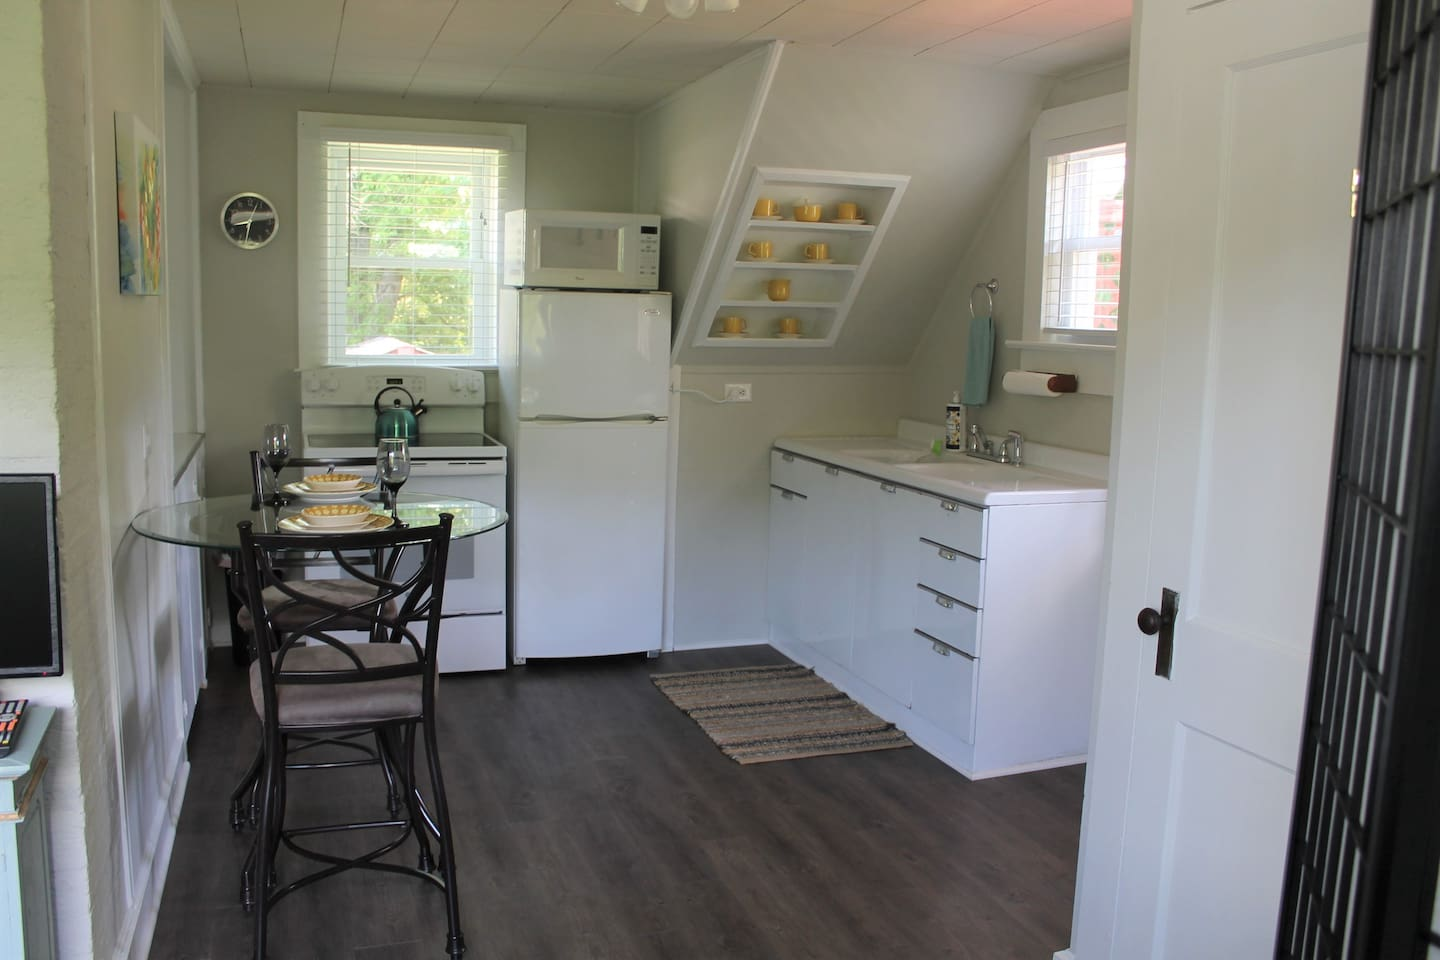 The kitchen offers plenty of space to move around while cooking